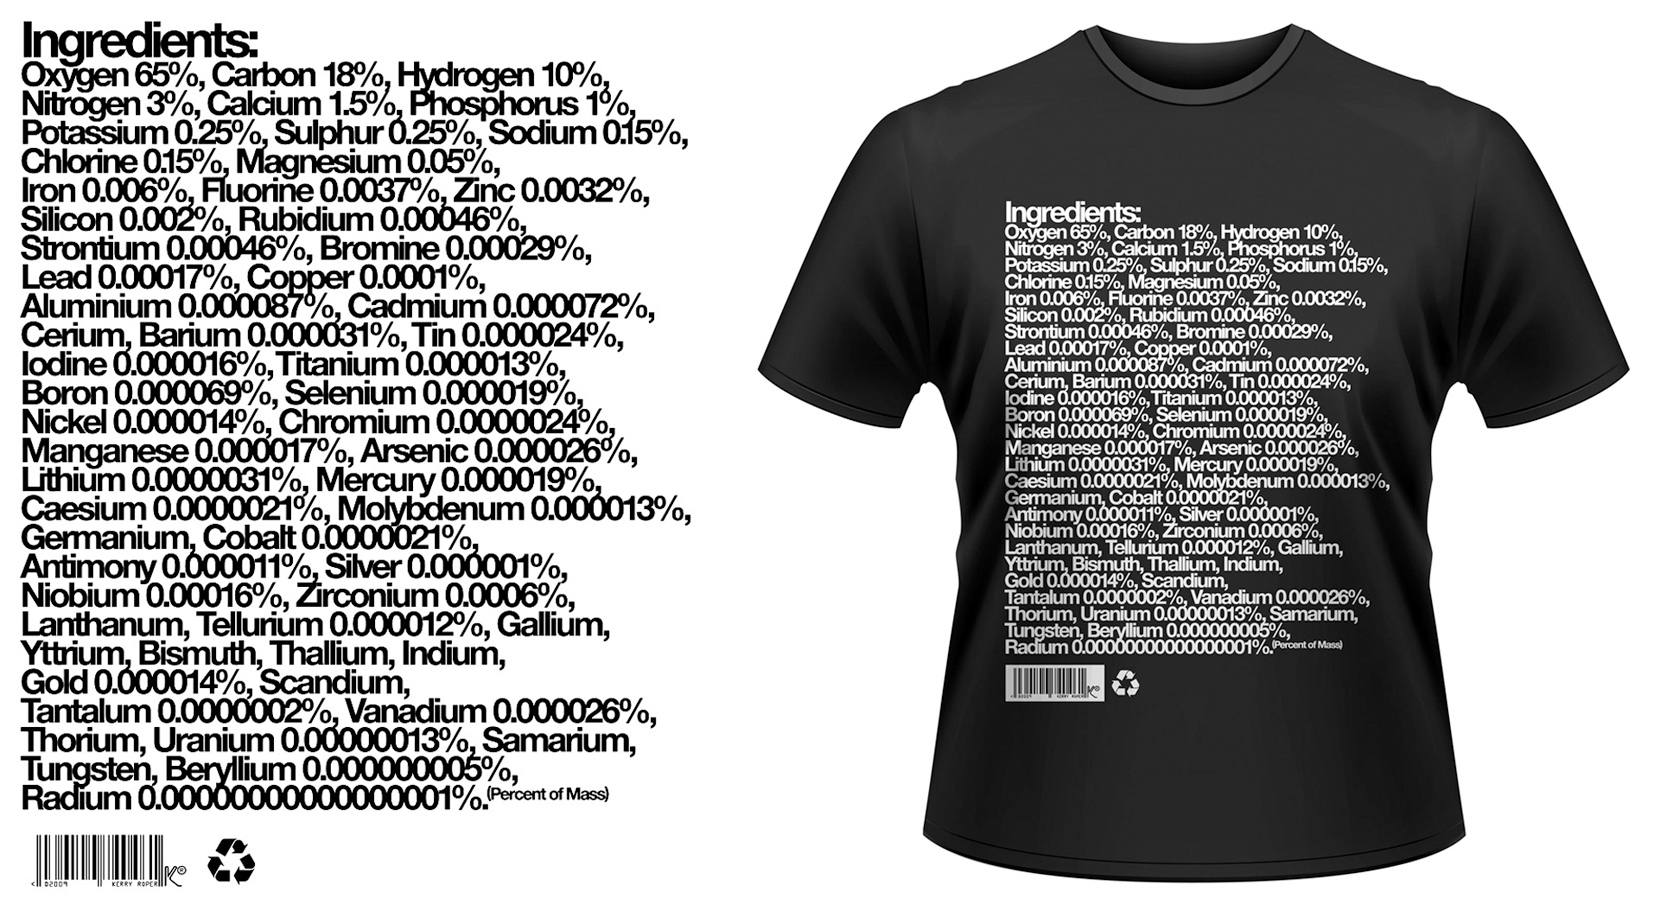 Ingredients T-Shirt